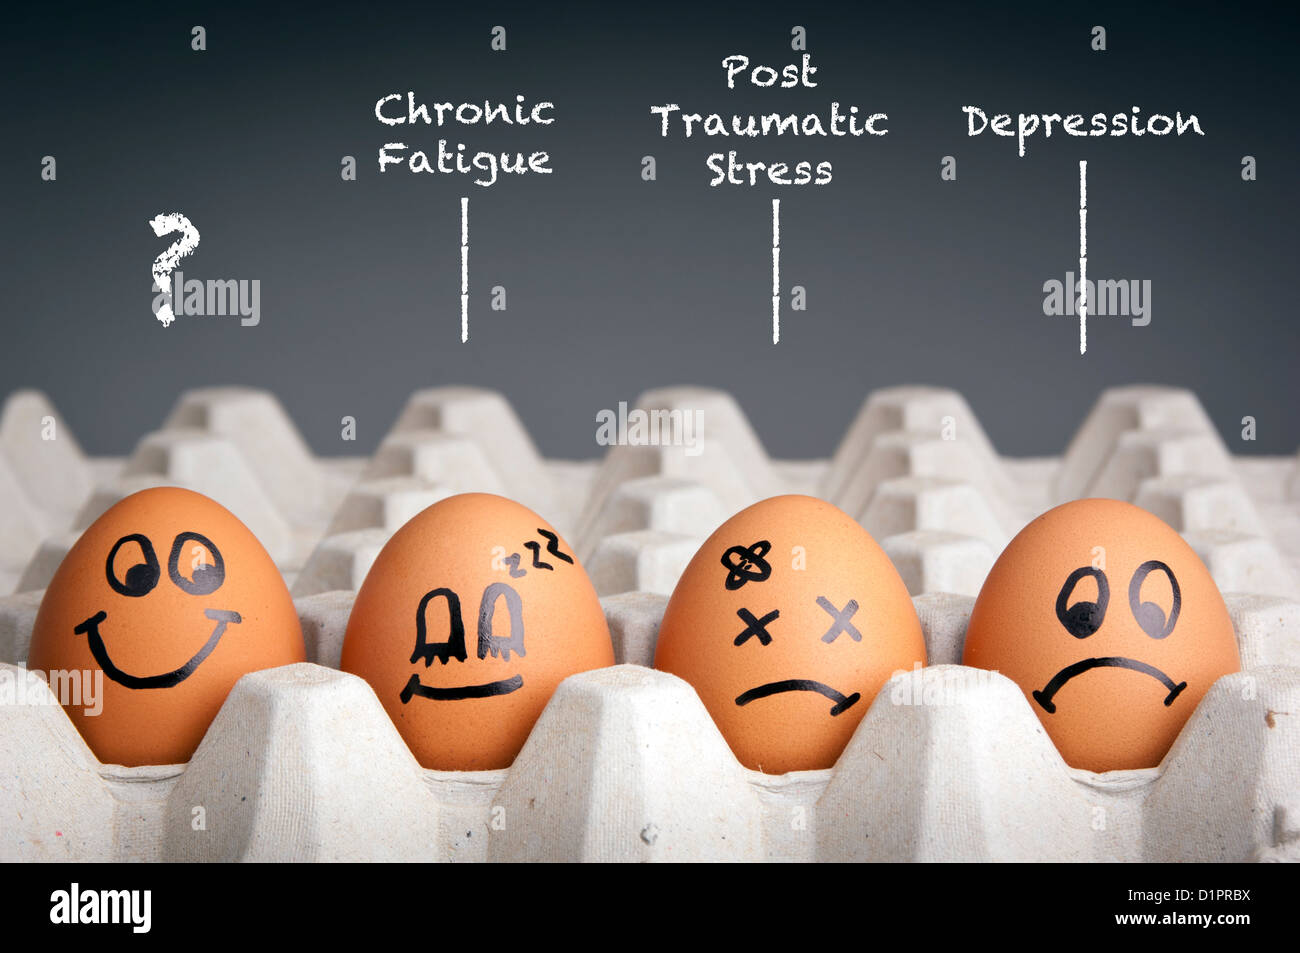 Mental health concept in playful style with egg characters - Stock Image